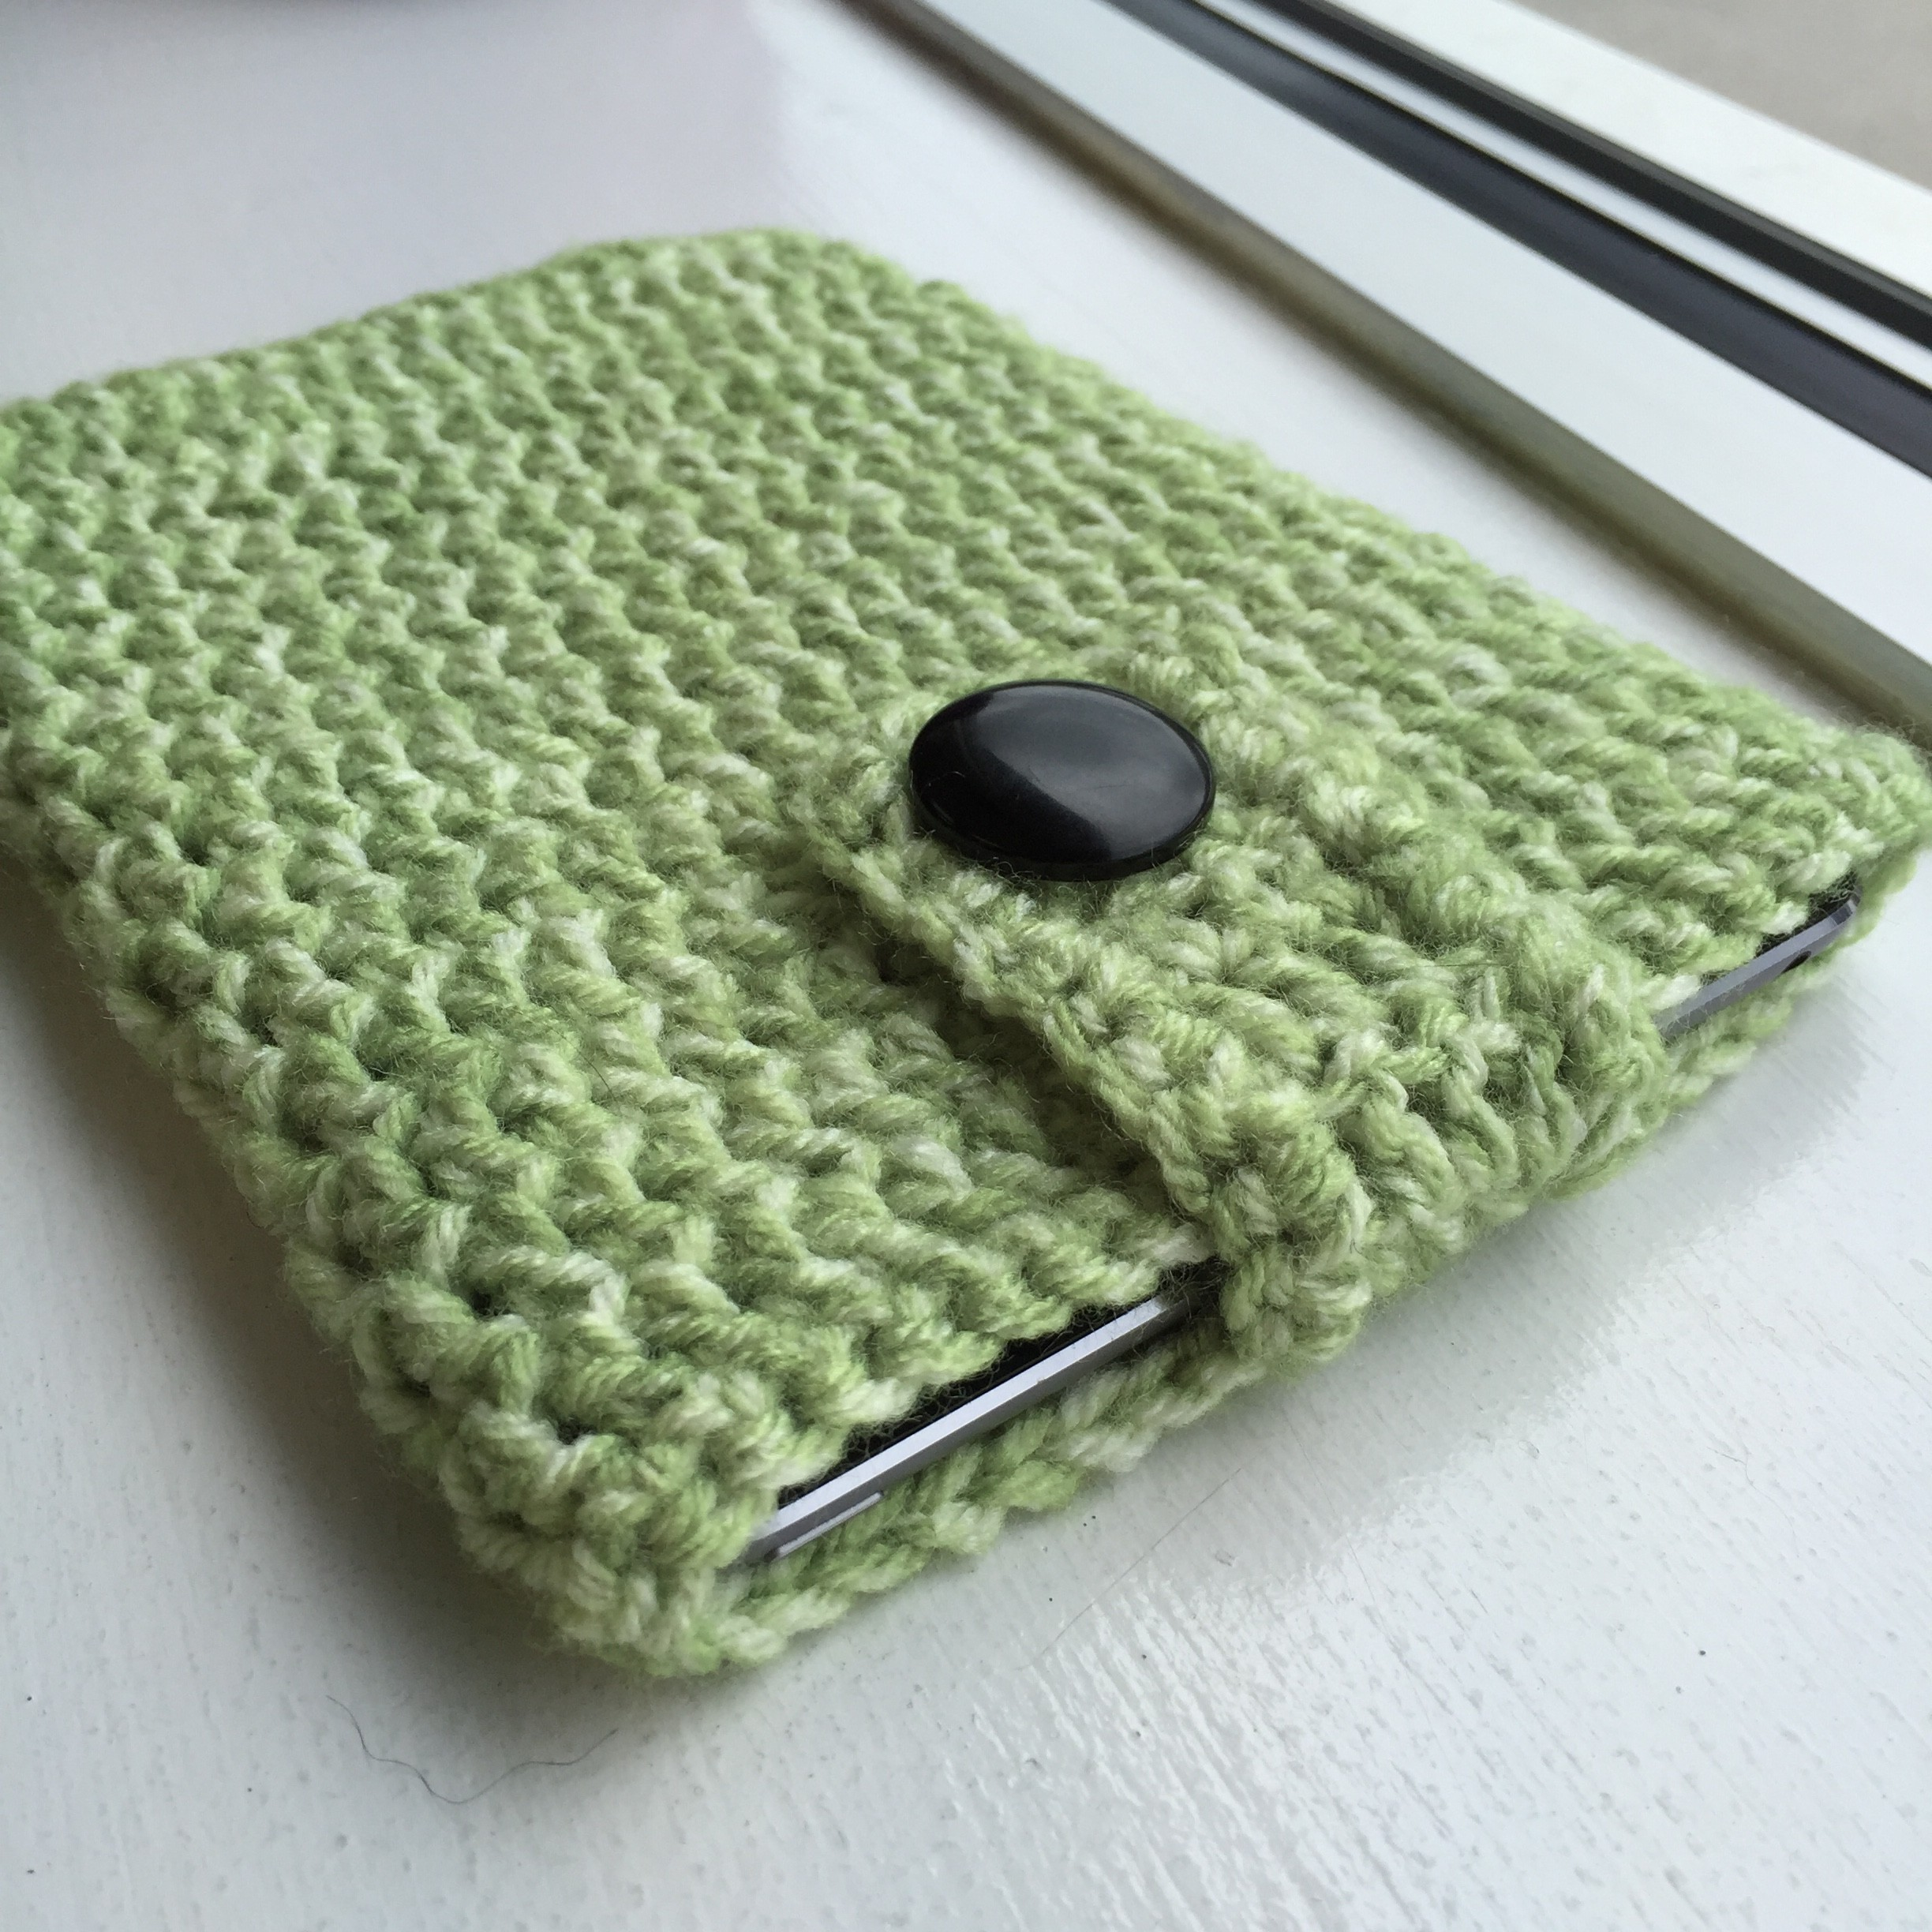 Easy Crocheted iPad Cozy